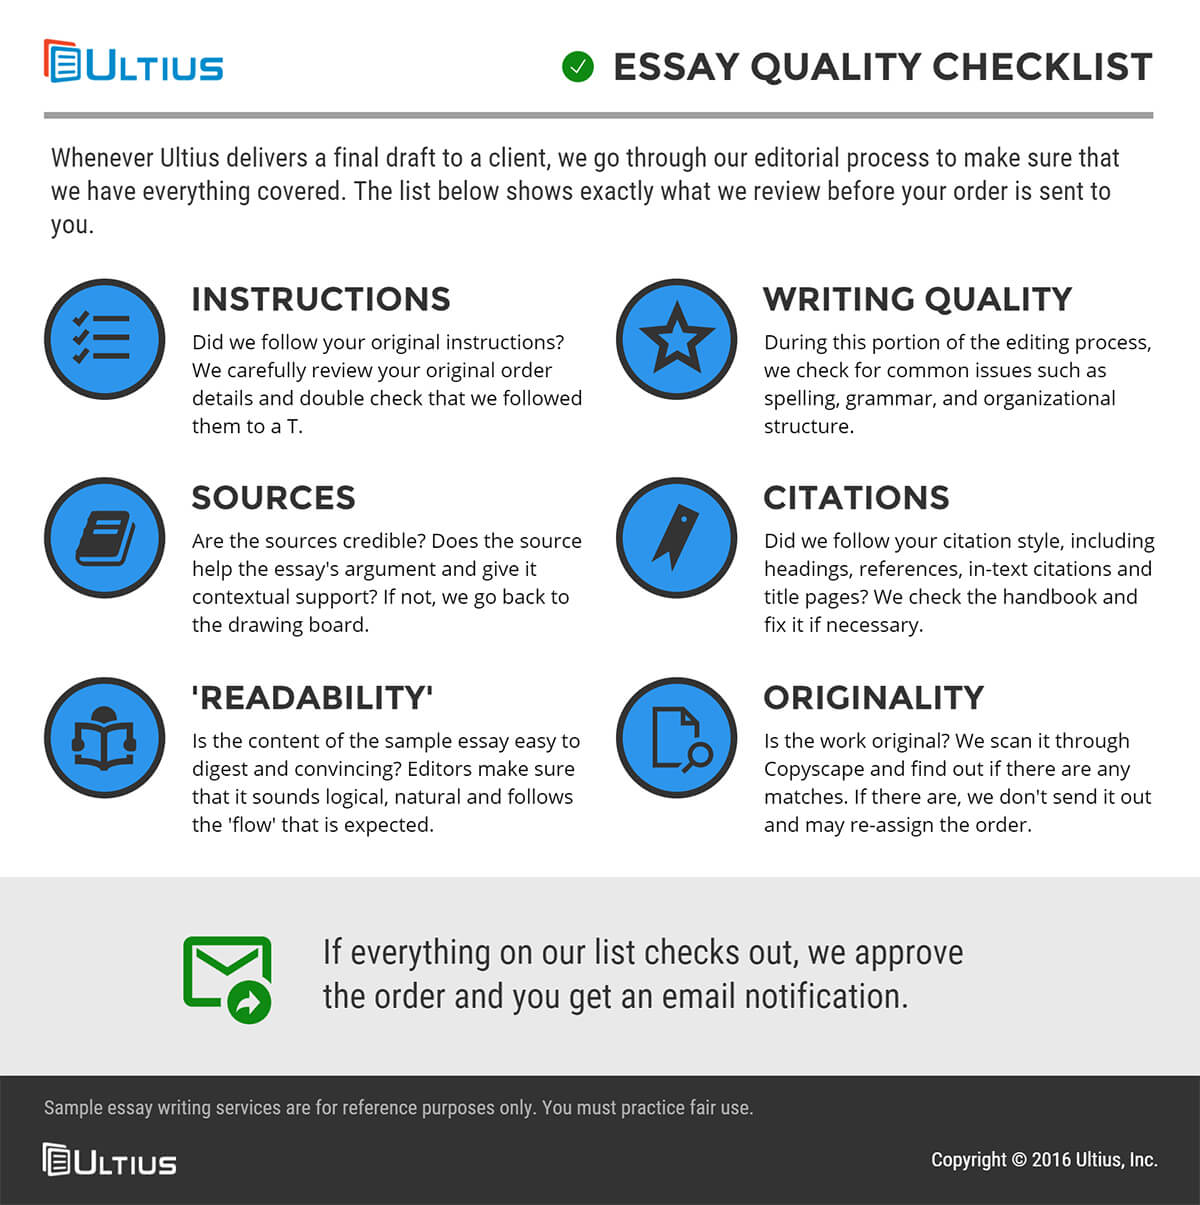 014 Essay Example Purchased Quality Checklist Dreaded Persuasive Rubric Word Document Graphic Organizer 8th Grade Outline High School Full